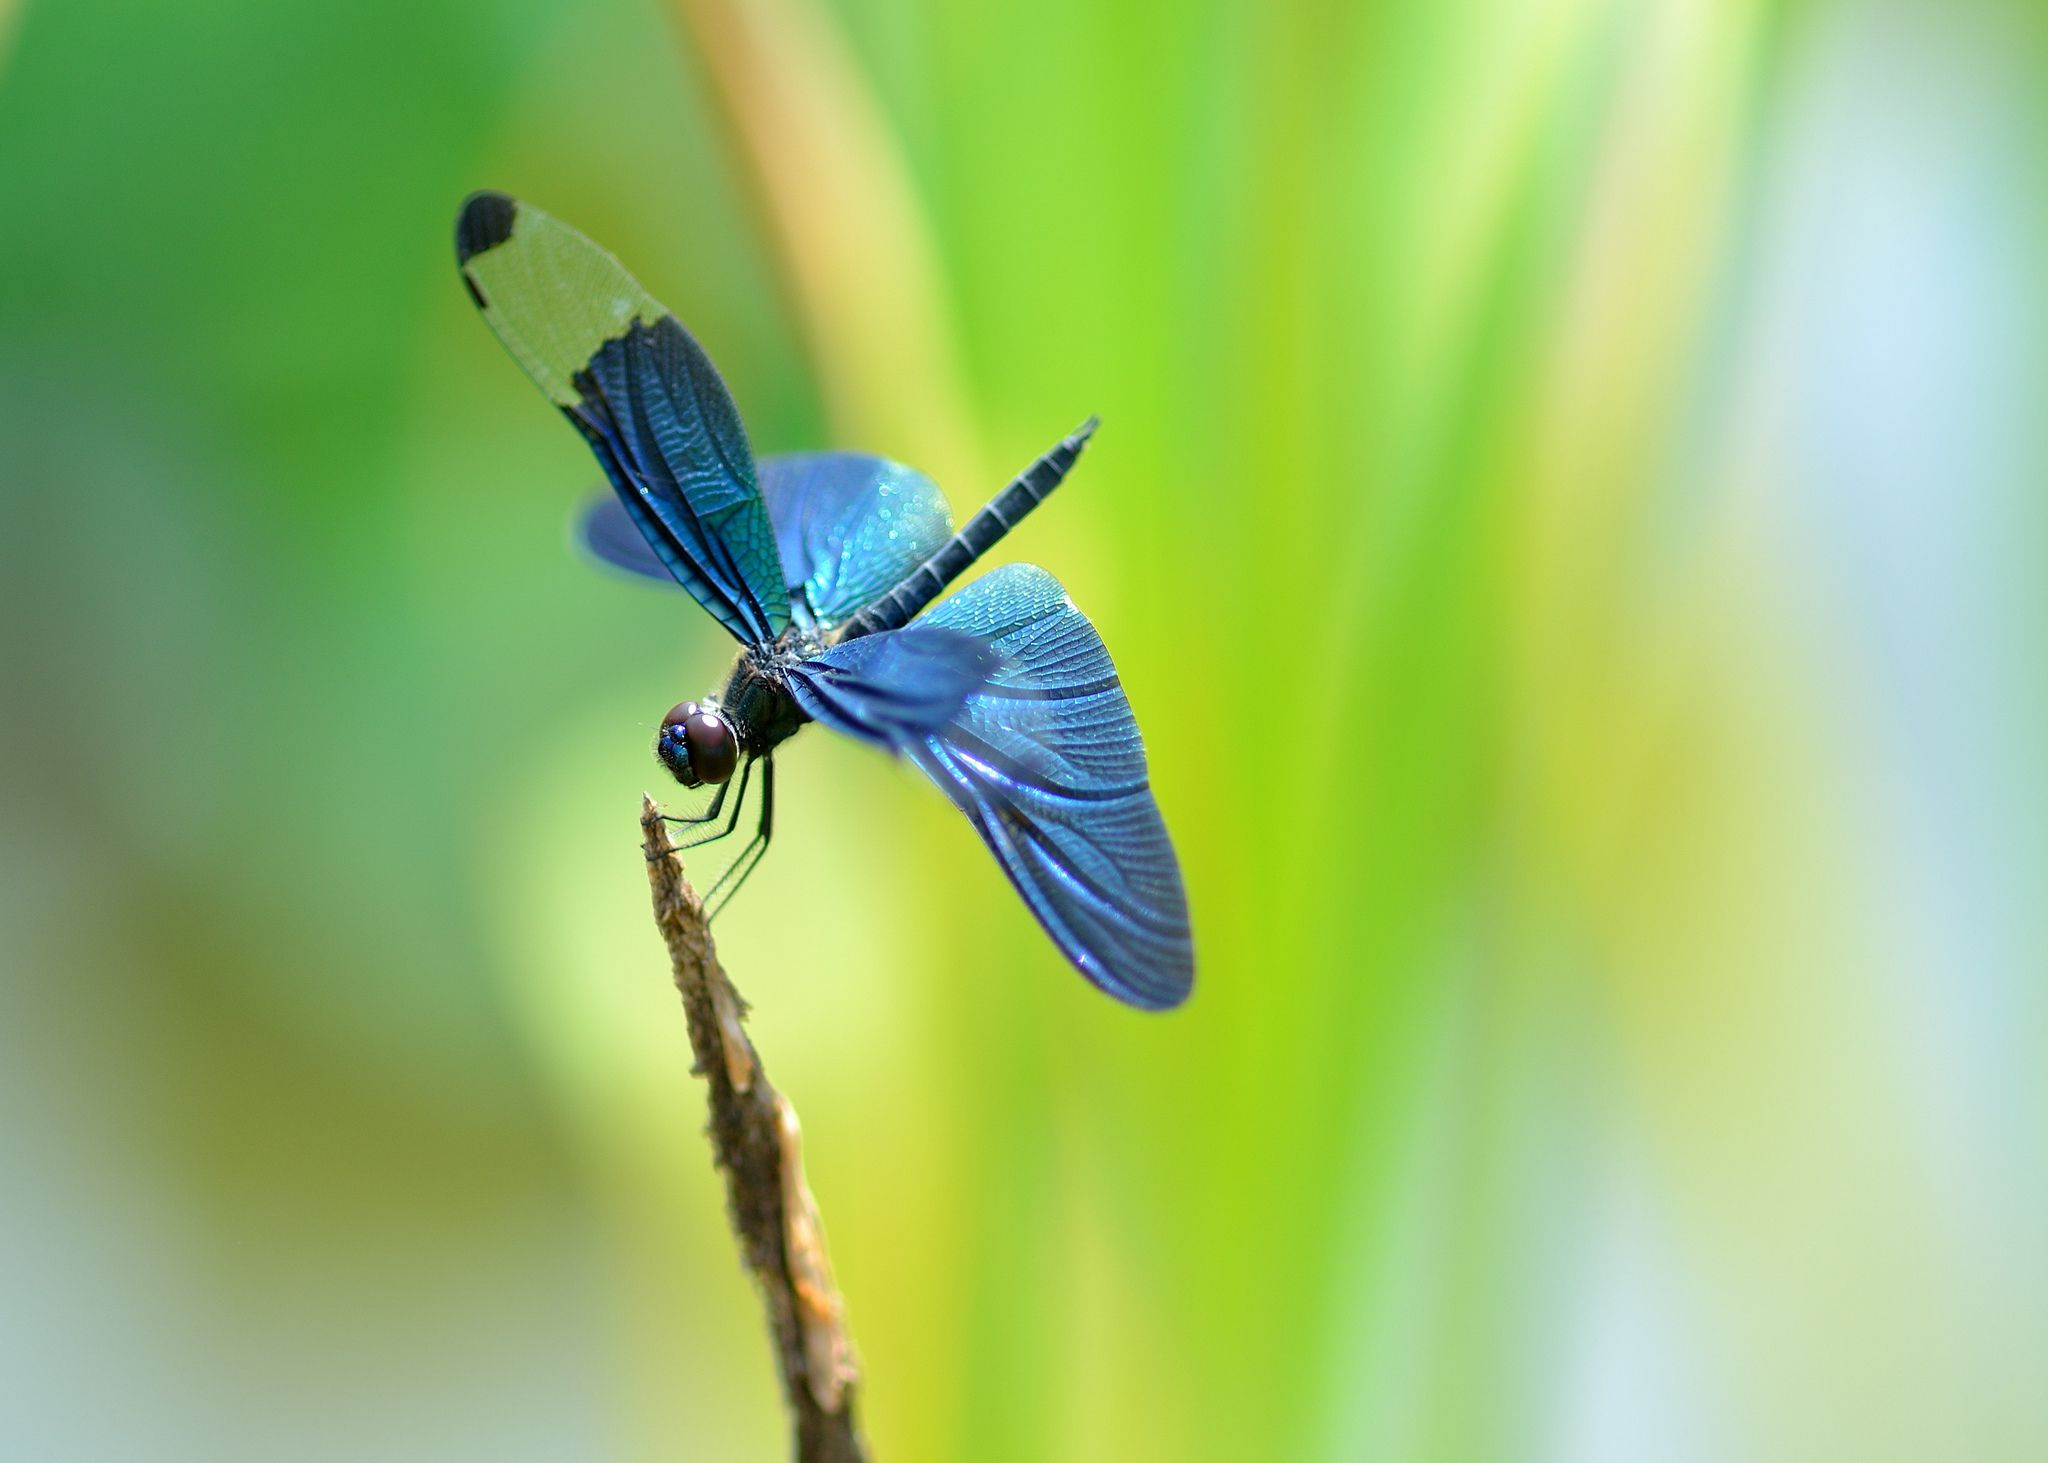 Free-Dragonfly-1920×1080-Dragonfly-Adorable-Wall-wallpaper-wp3805563